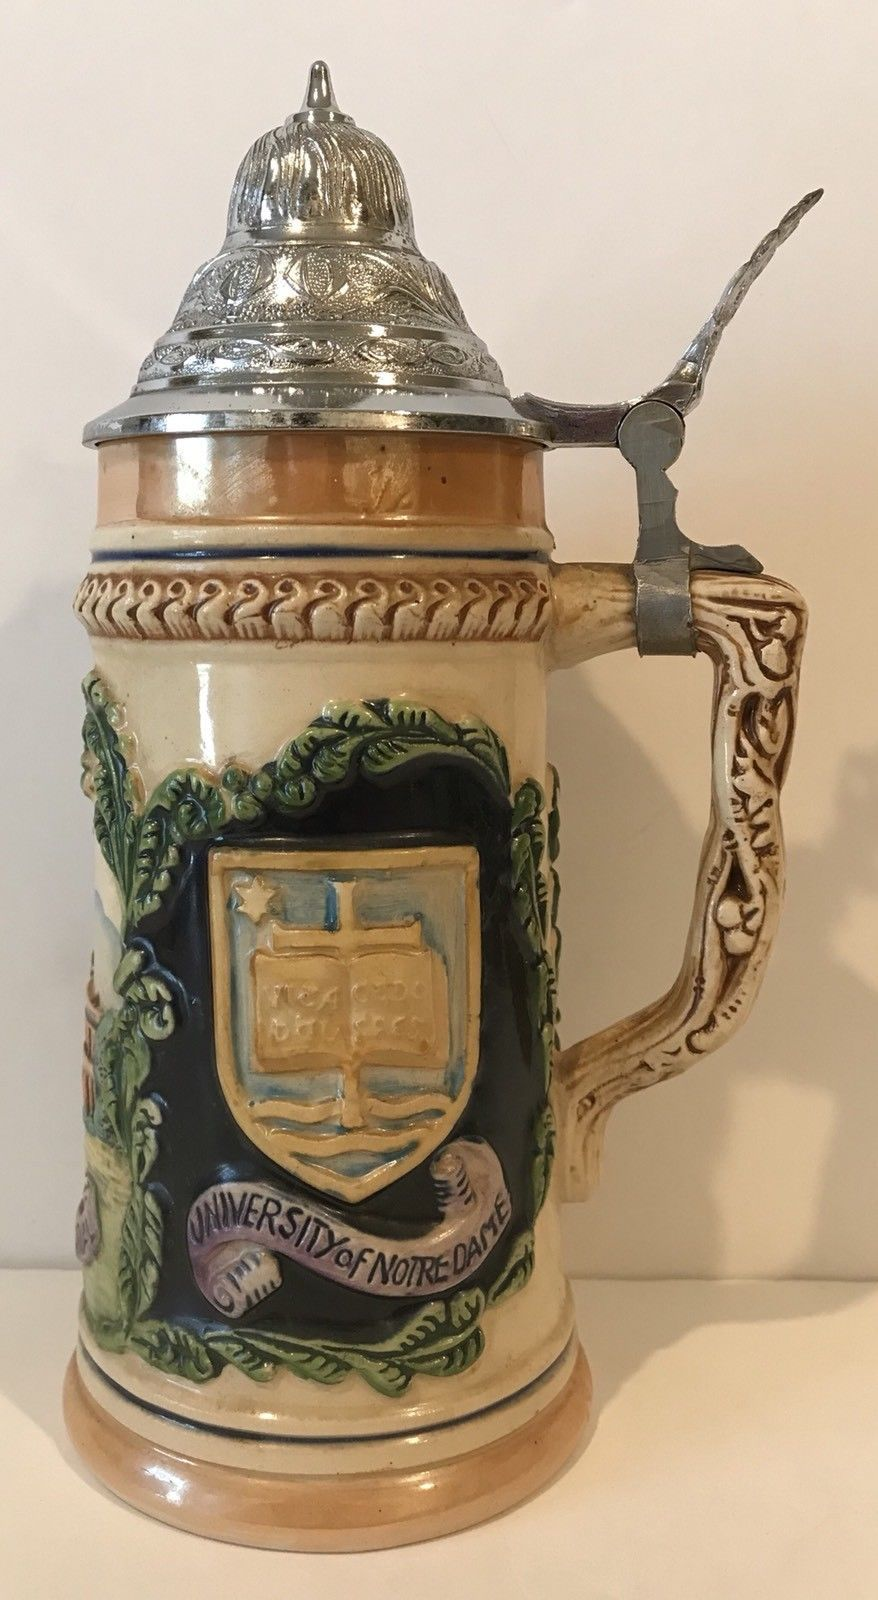 Vintage 1952 Eric P Mihan University Of Notre Dame Lidded Beer Stein Collectable Ebay Beer Steins Collectibles Vintage